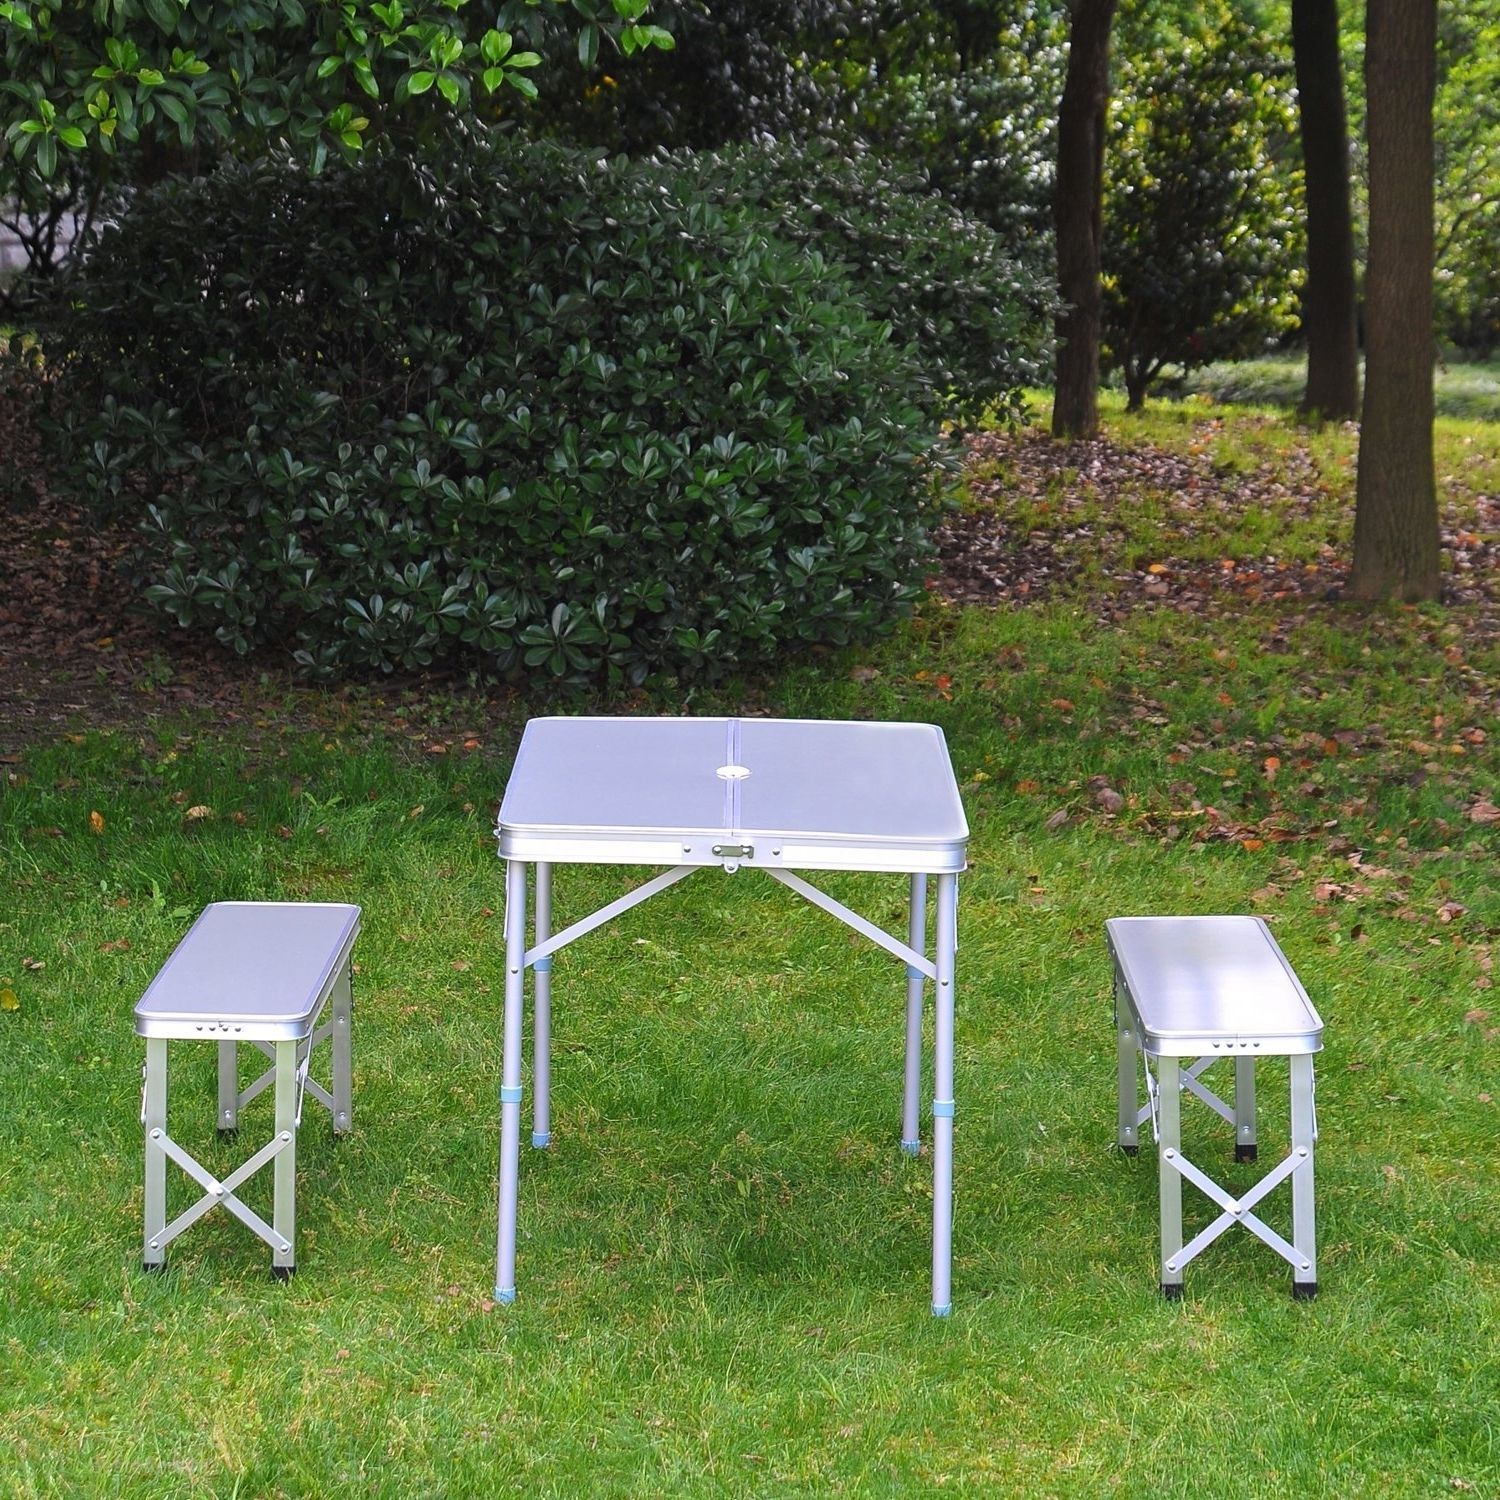 Portable Picnic Table Bench Set Outdoor Folding Garden Camping 3 pcs Alloy Set image 3